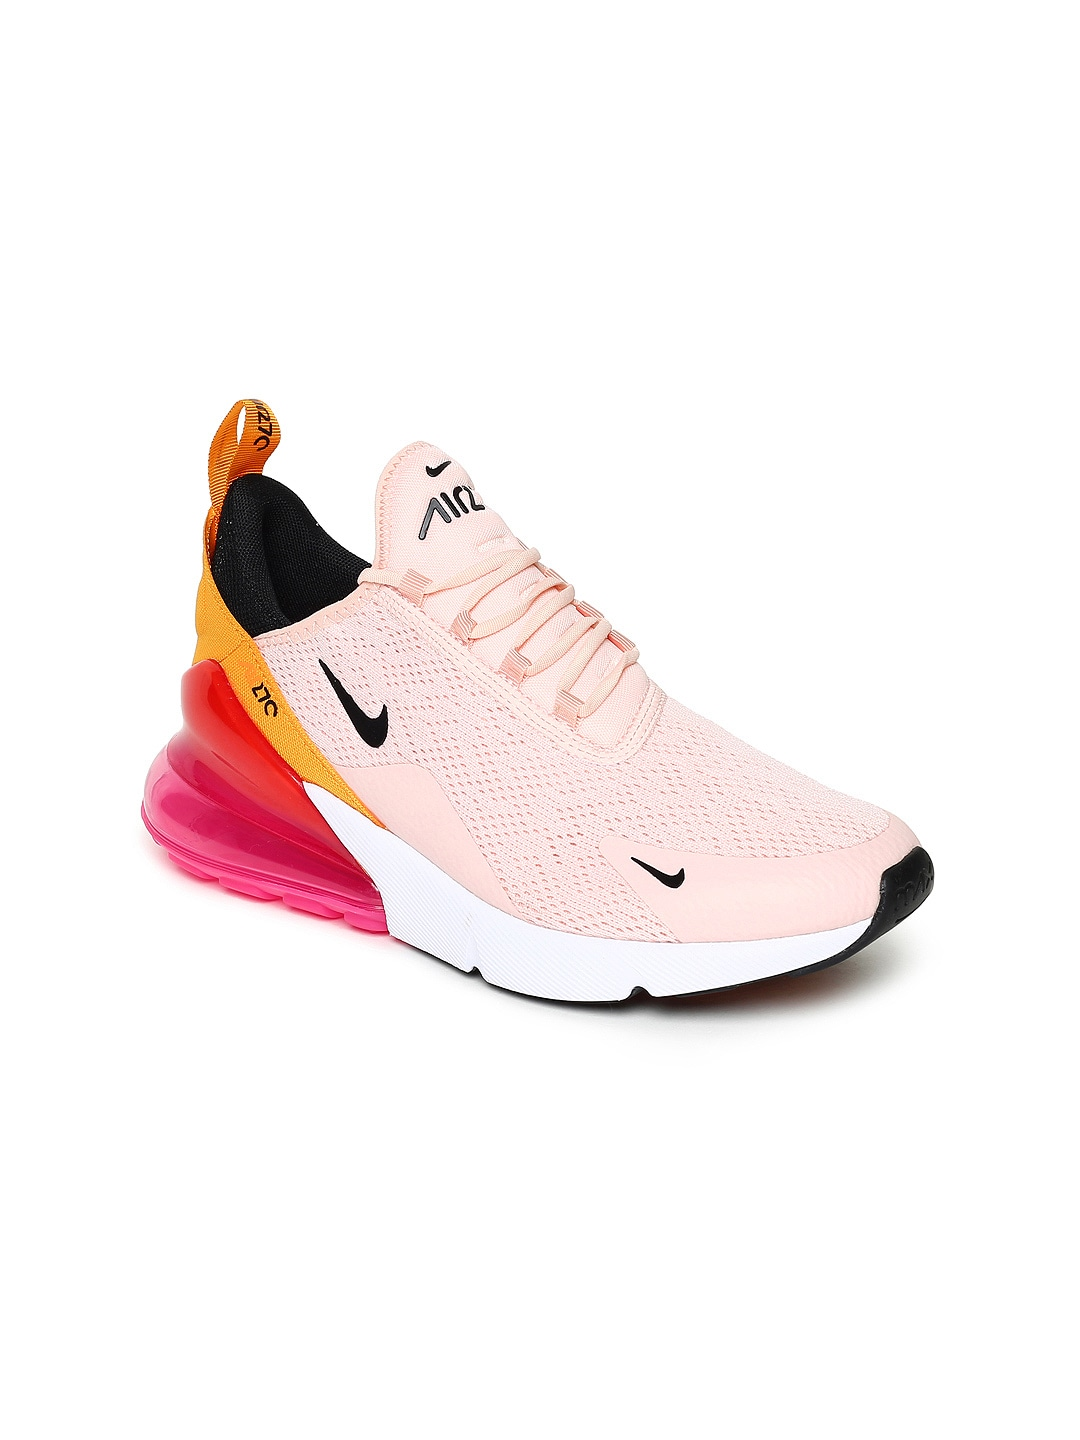 a3ef58a14 Nike Pink Shoes - Buy Nike Pink Shoes Online in India